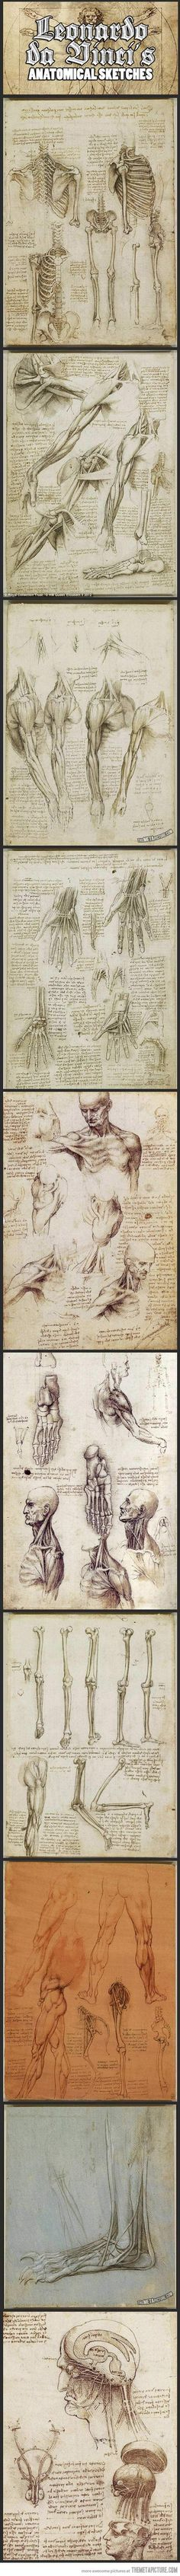 Leonardo da Vinci's anatomical sketches... - The Meta Picture via cgpin.com